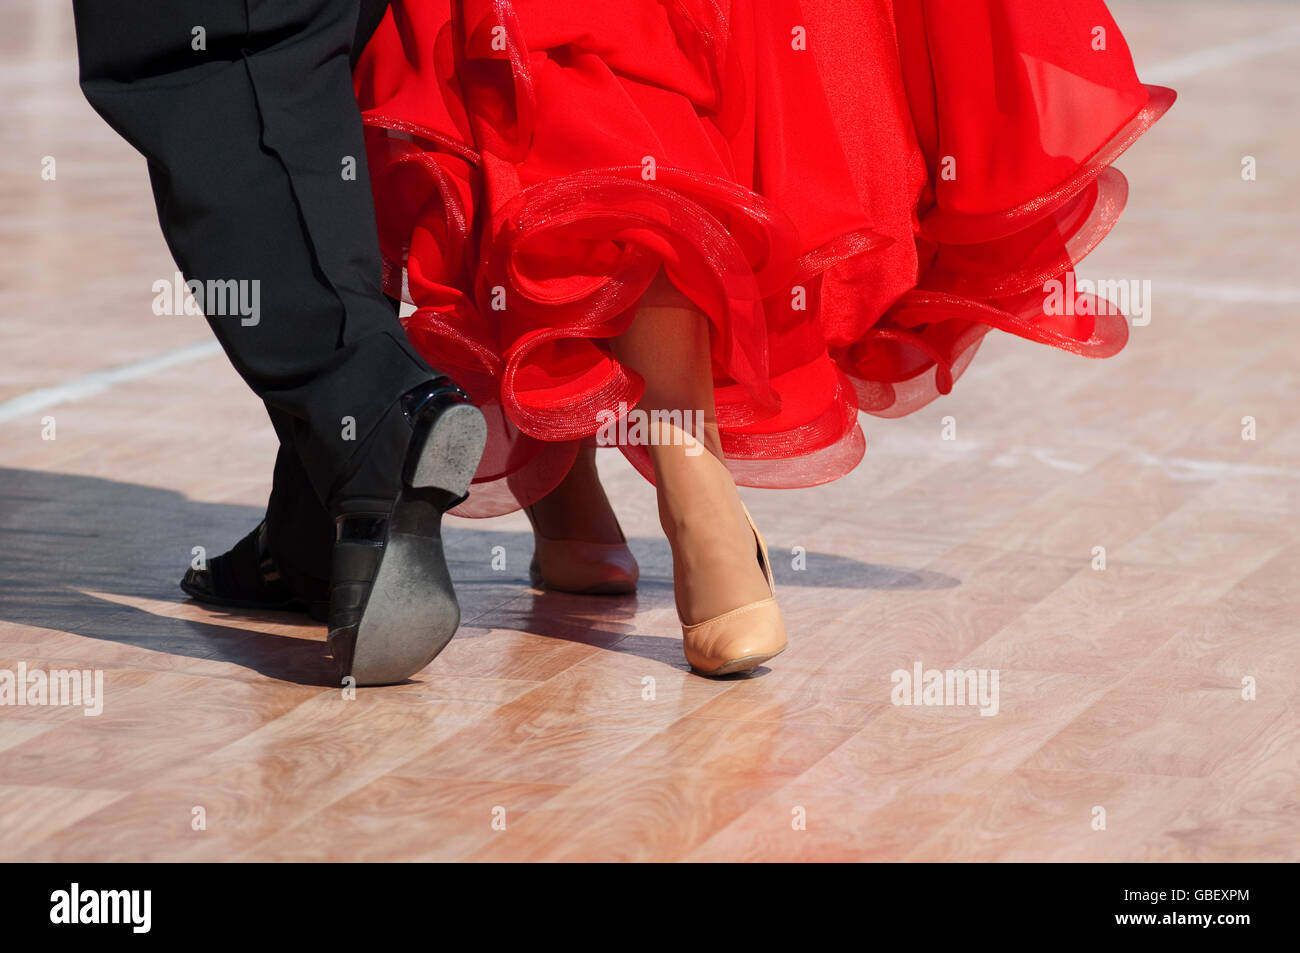 Feet Detail of Couple Dancing - Stock Image